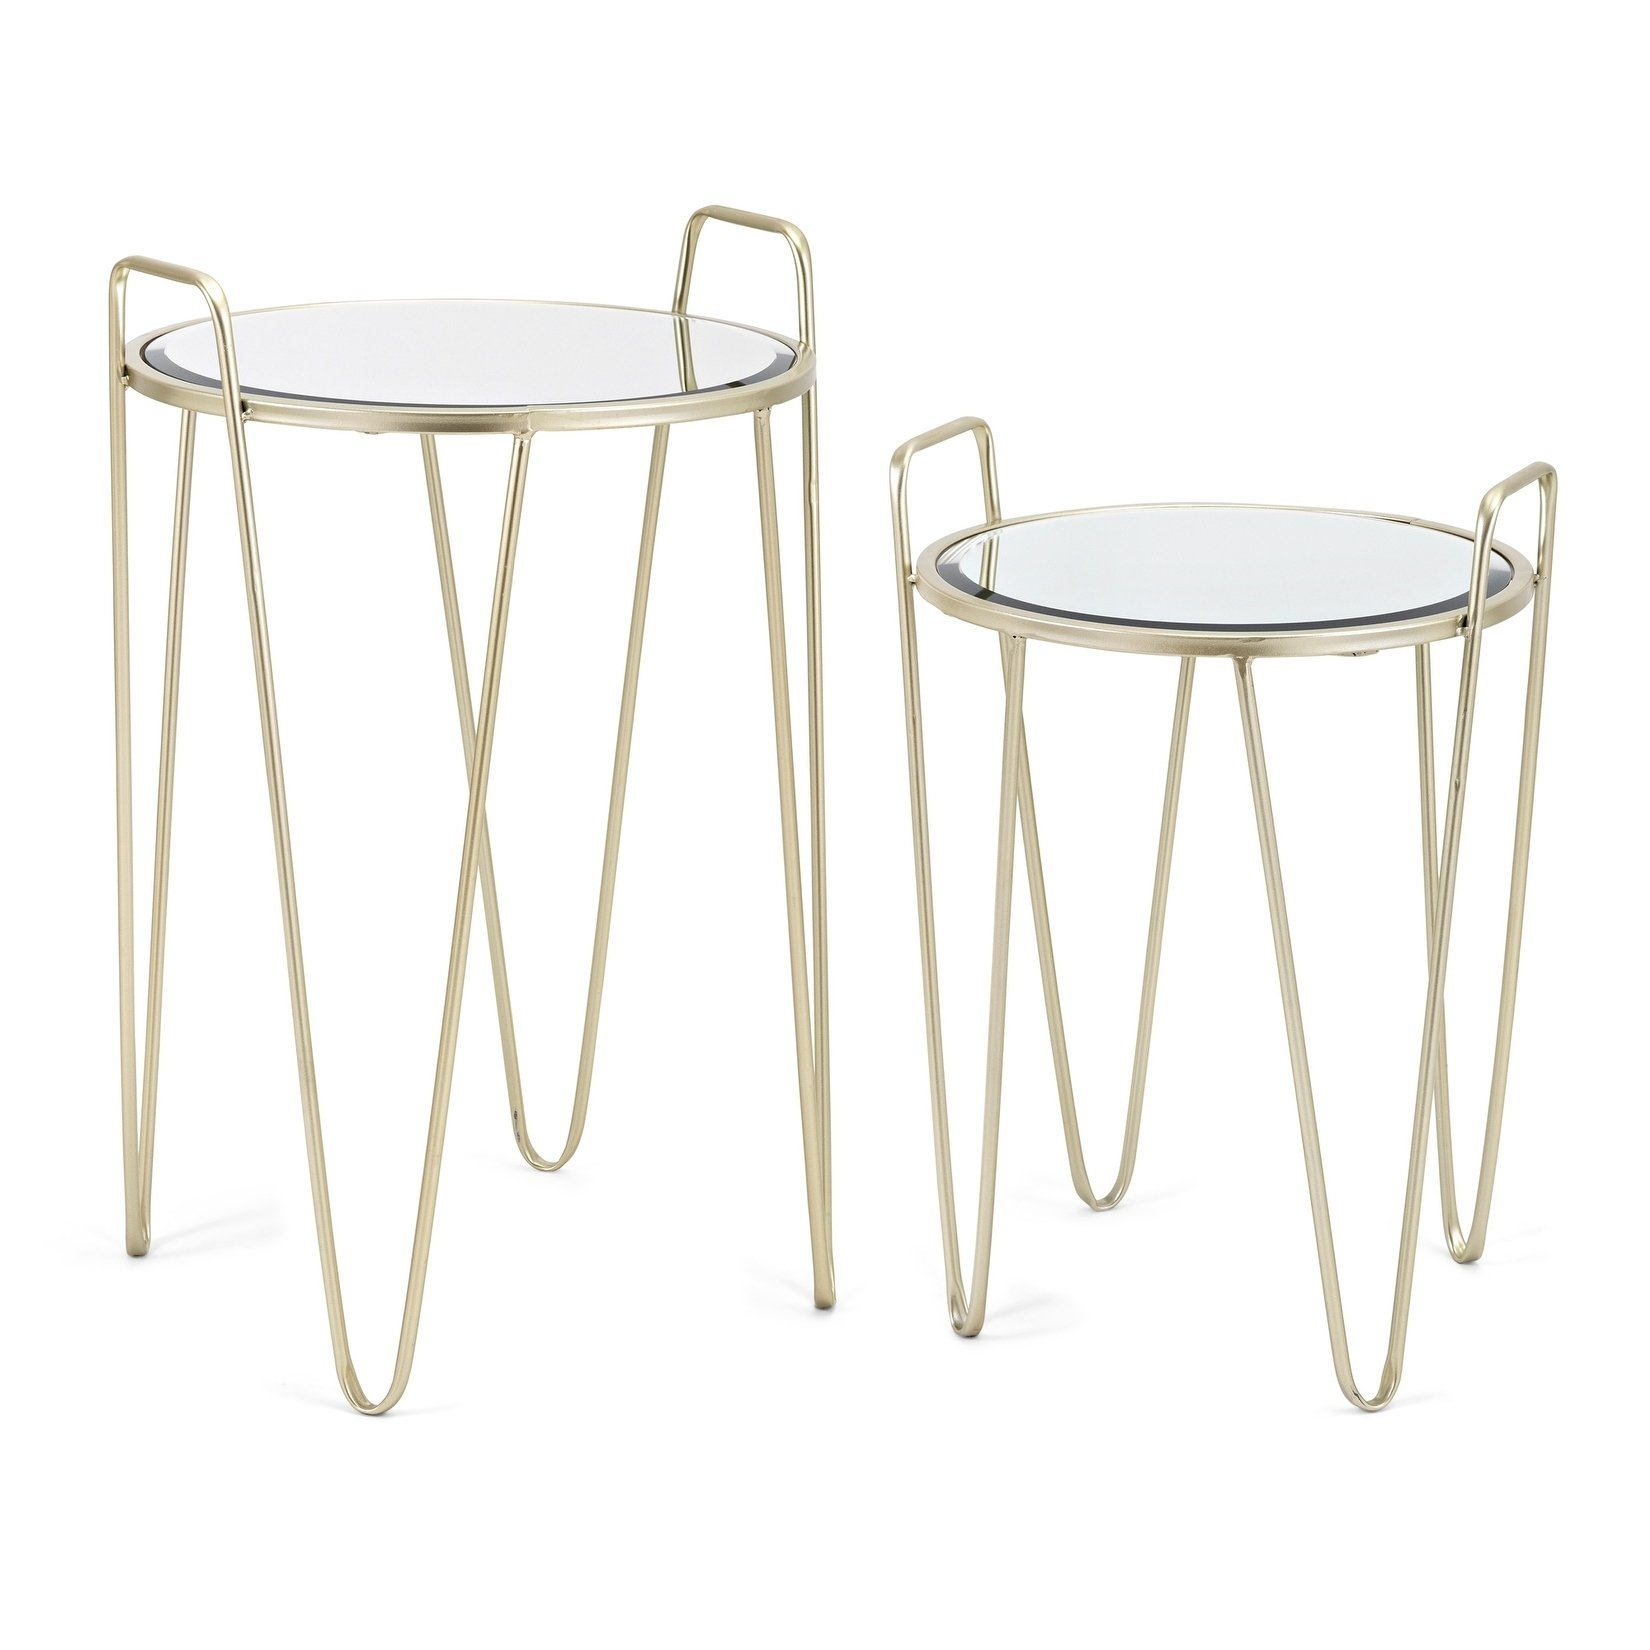 abigial satin gold accent tables set free table shipping today nautical bathroom sconces piece end plexiglass nesting timber trestle legs black solid wood coffee narrow kitchen